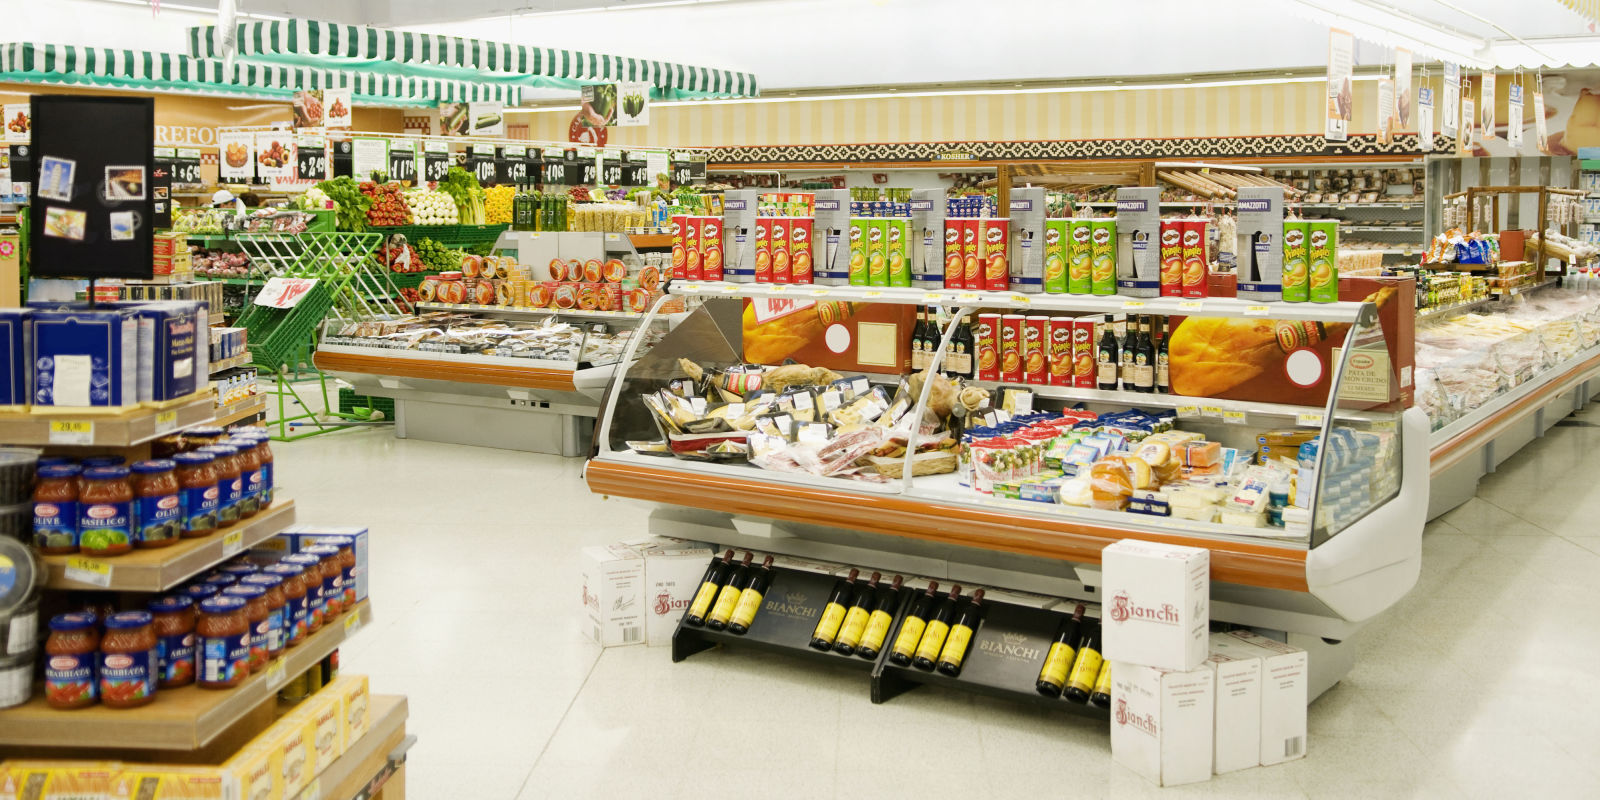 11 Worst Foods At The Grocery Store Unhealthy Foods To Avoid